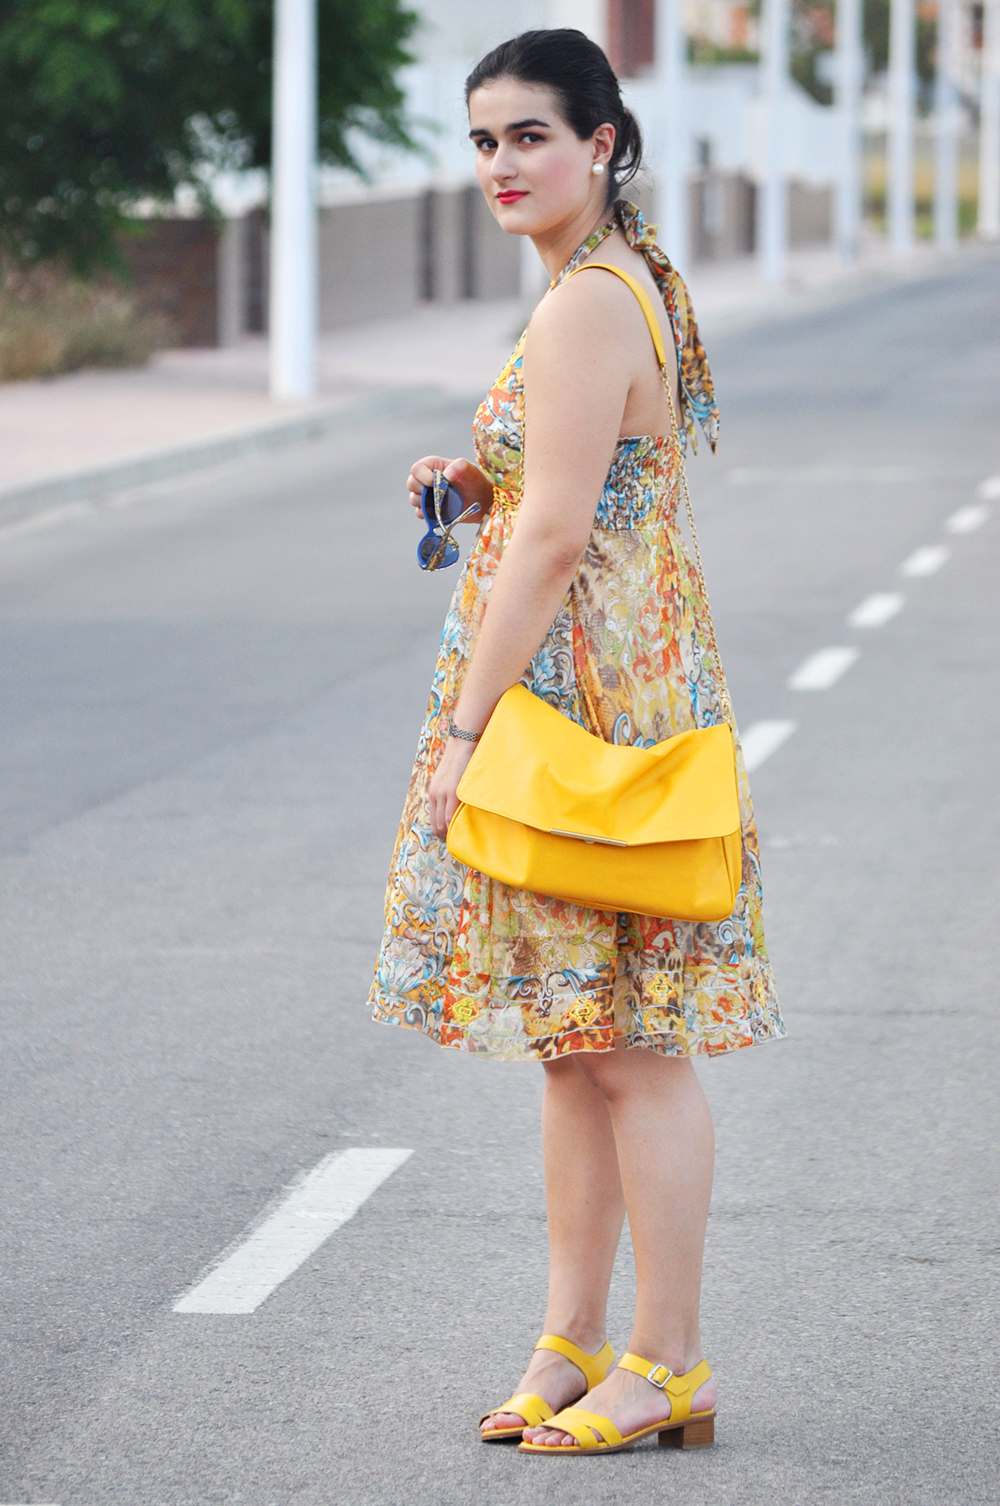 valencia fashion blogger, somethingfashion dolce gabbana sunglasses collection 2014, moda valencia blog, print backless dress style outfit summer 2015 yellow, blue D&G print sunnies